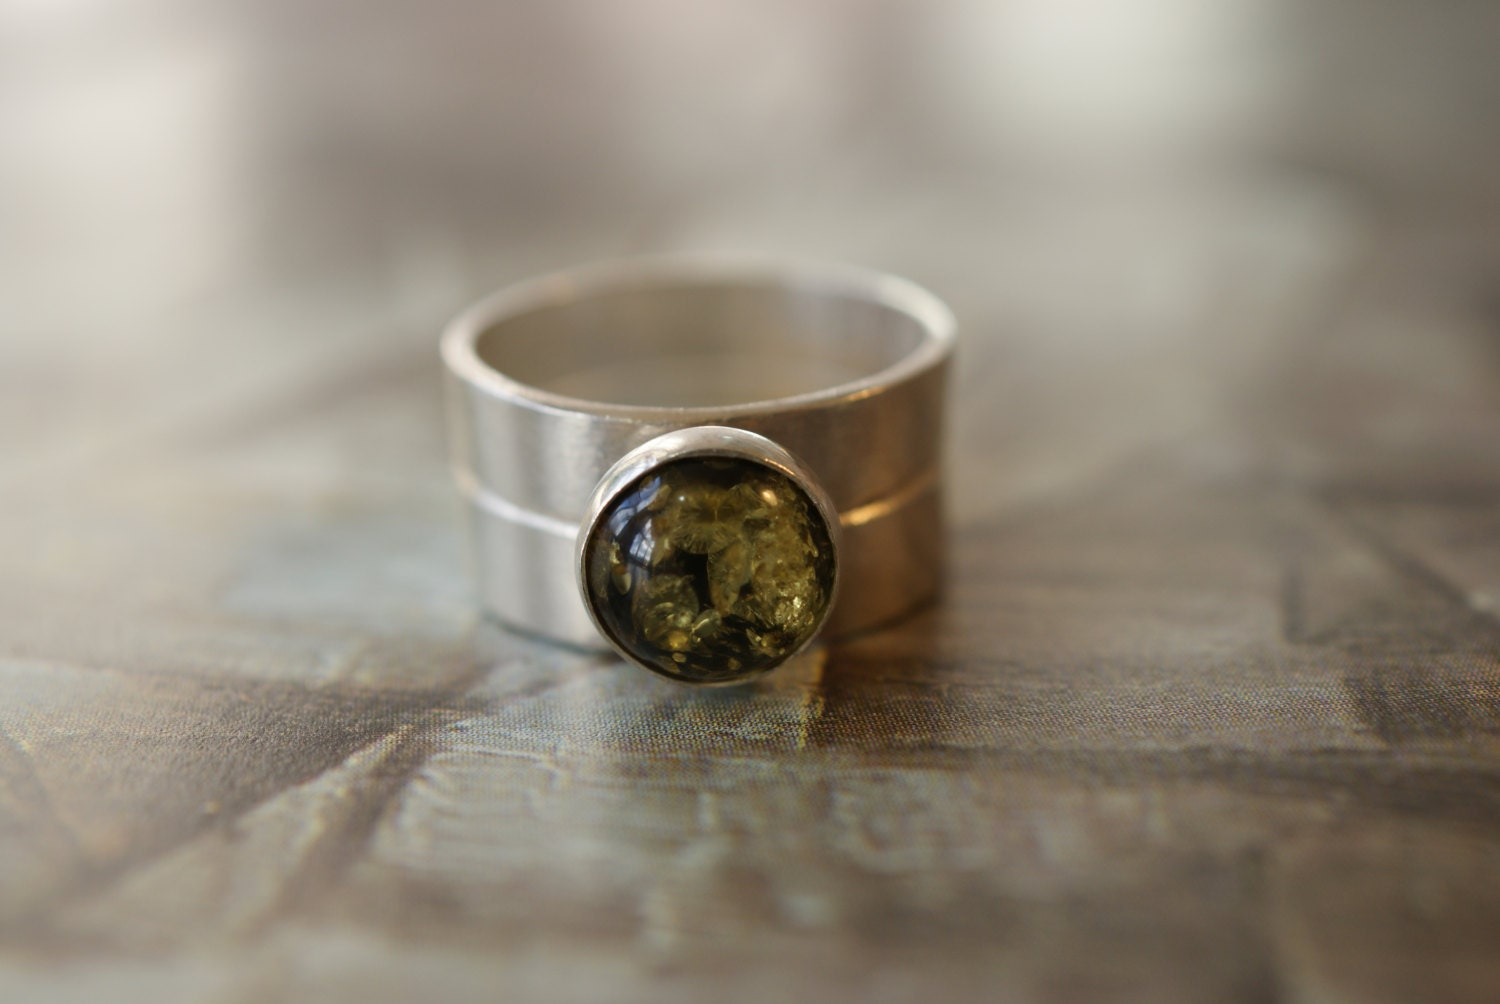 Silver Two Band Ring With 8mm Green Amber Stone Dr Who